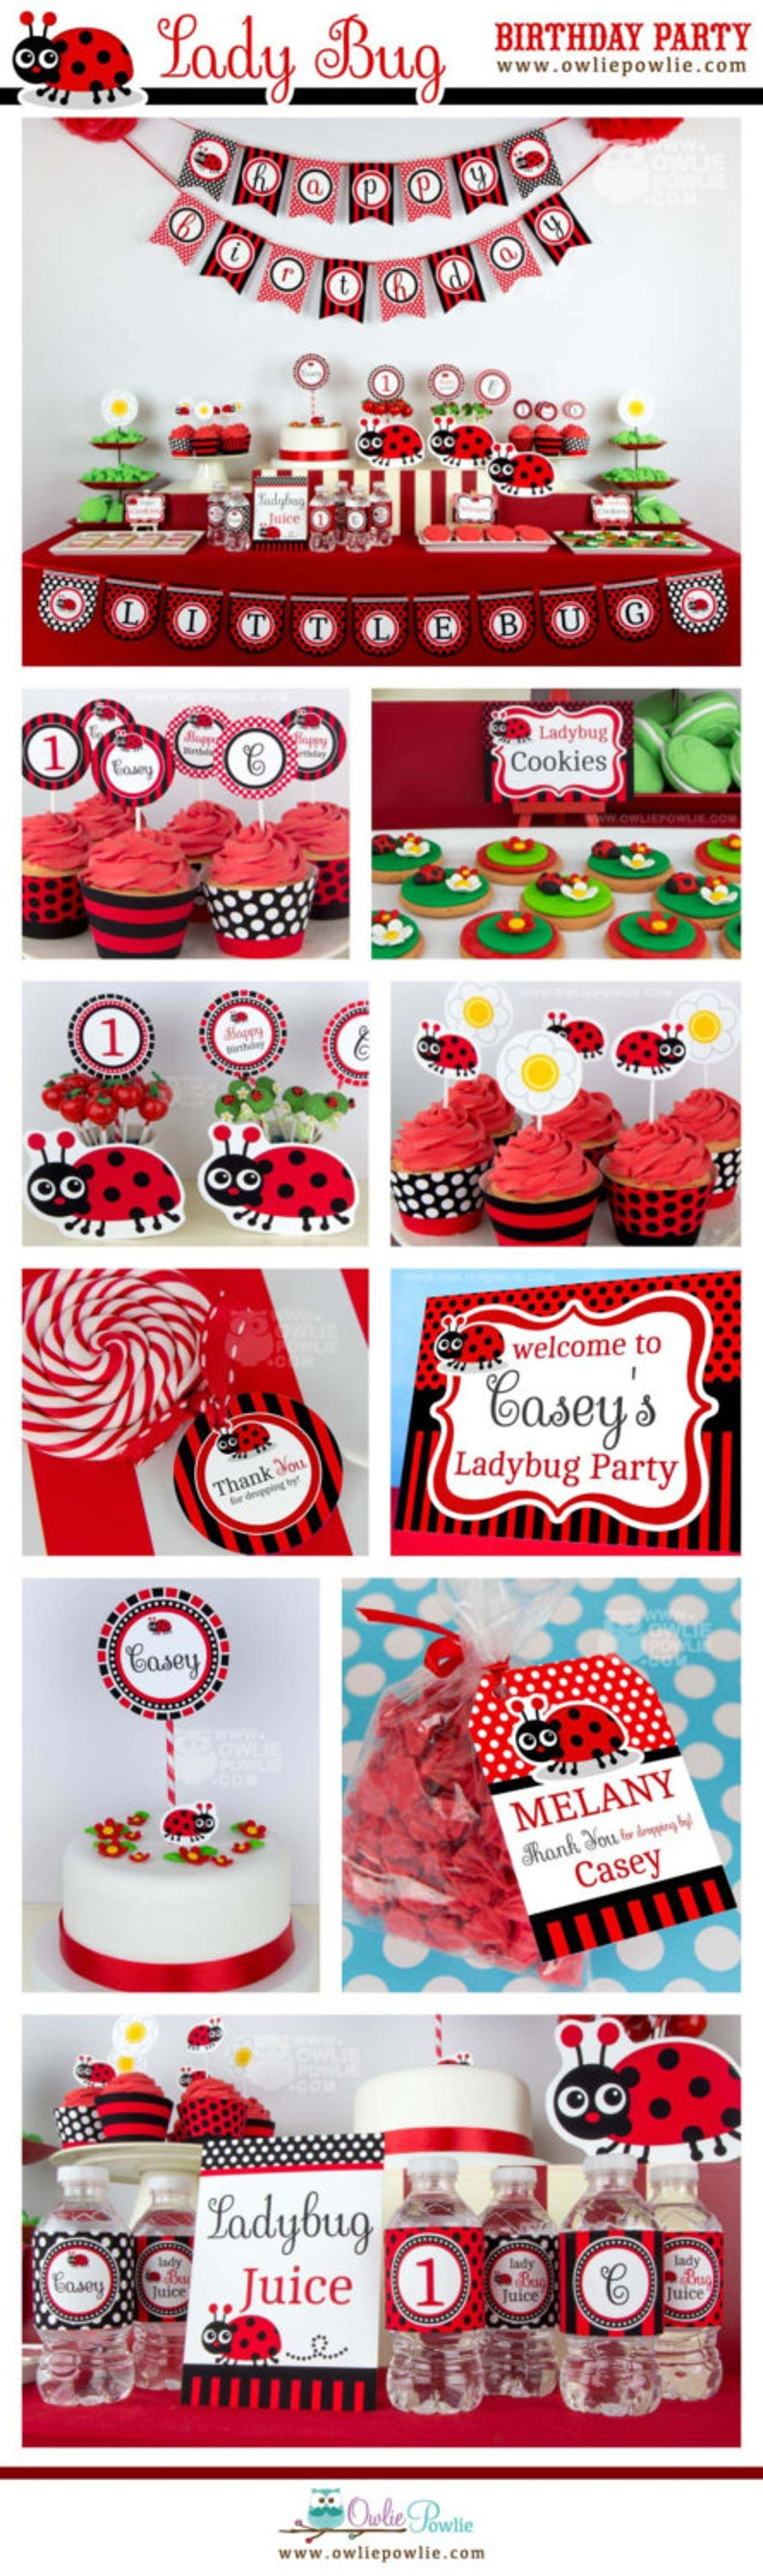 Lady Bug BIRTHDAY Party Printable Package Invitation